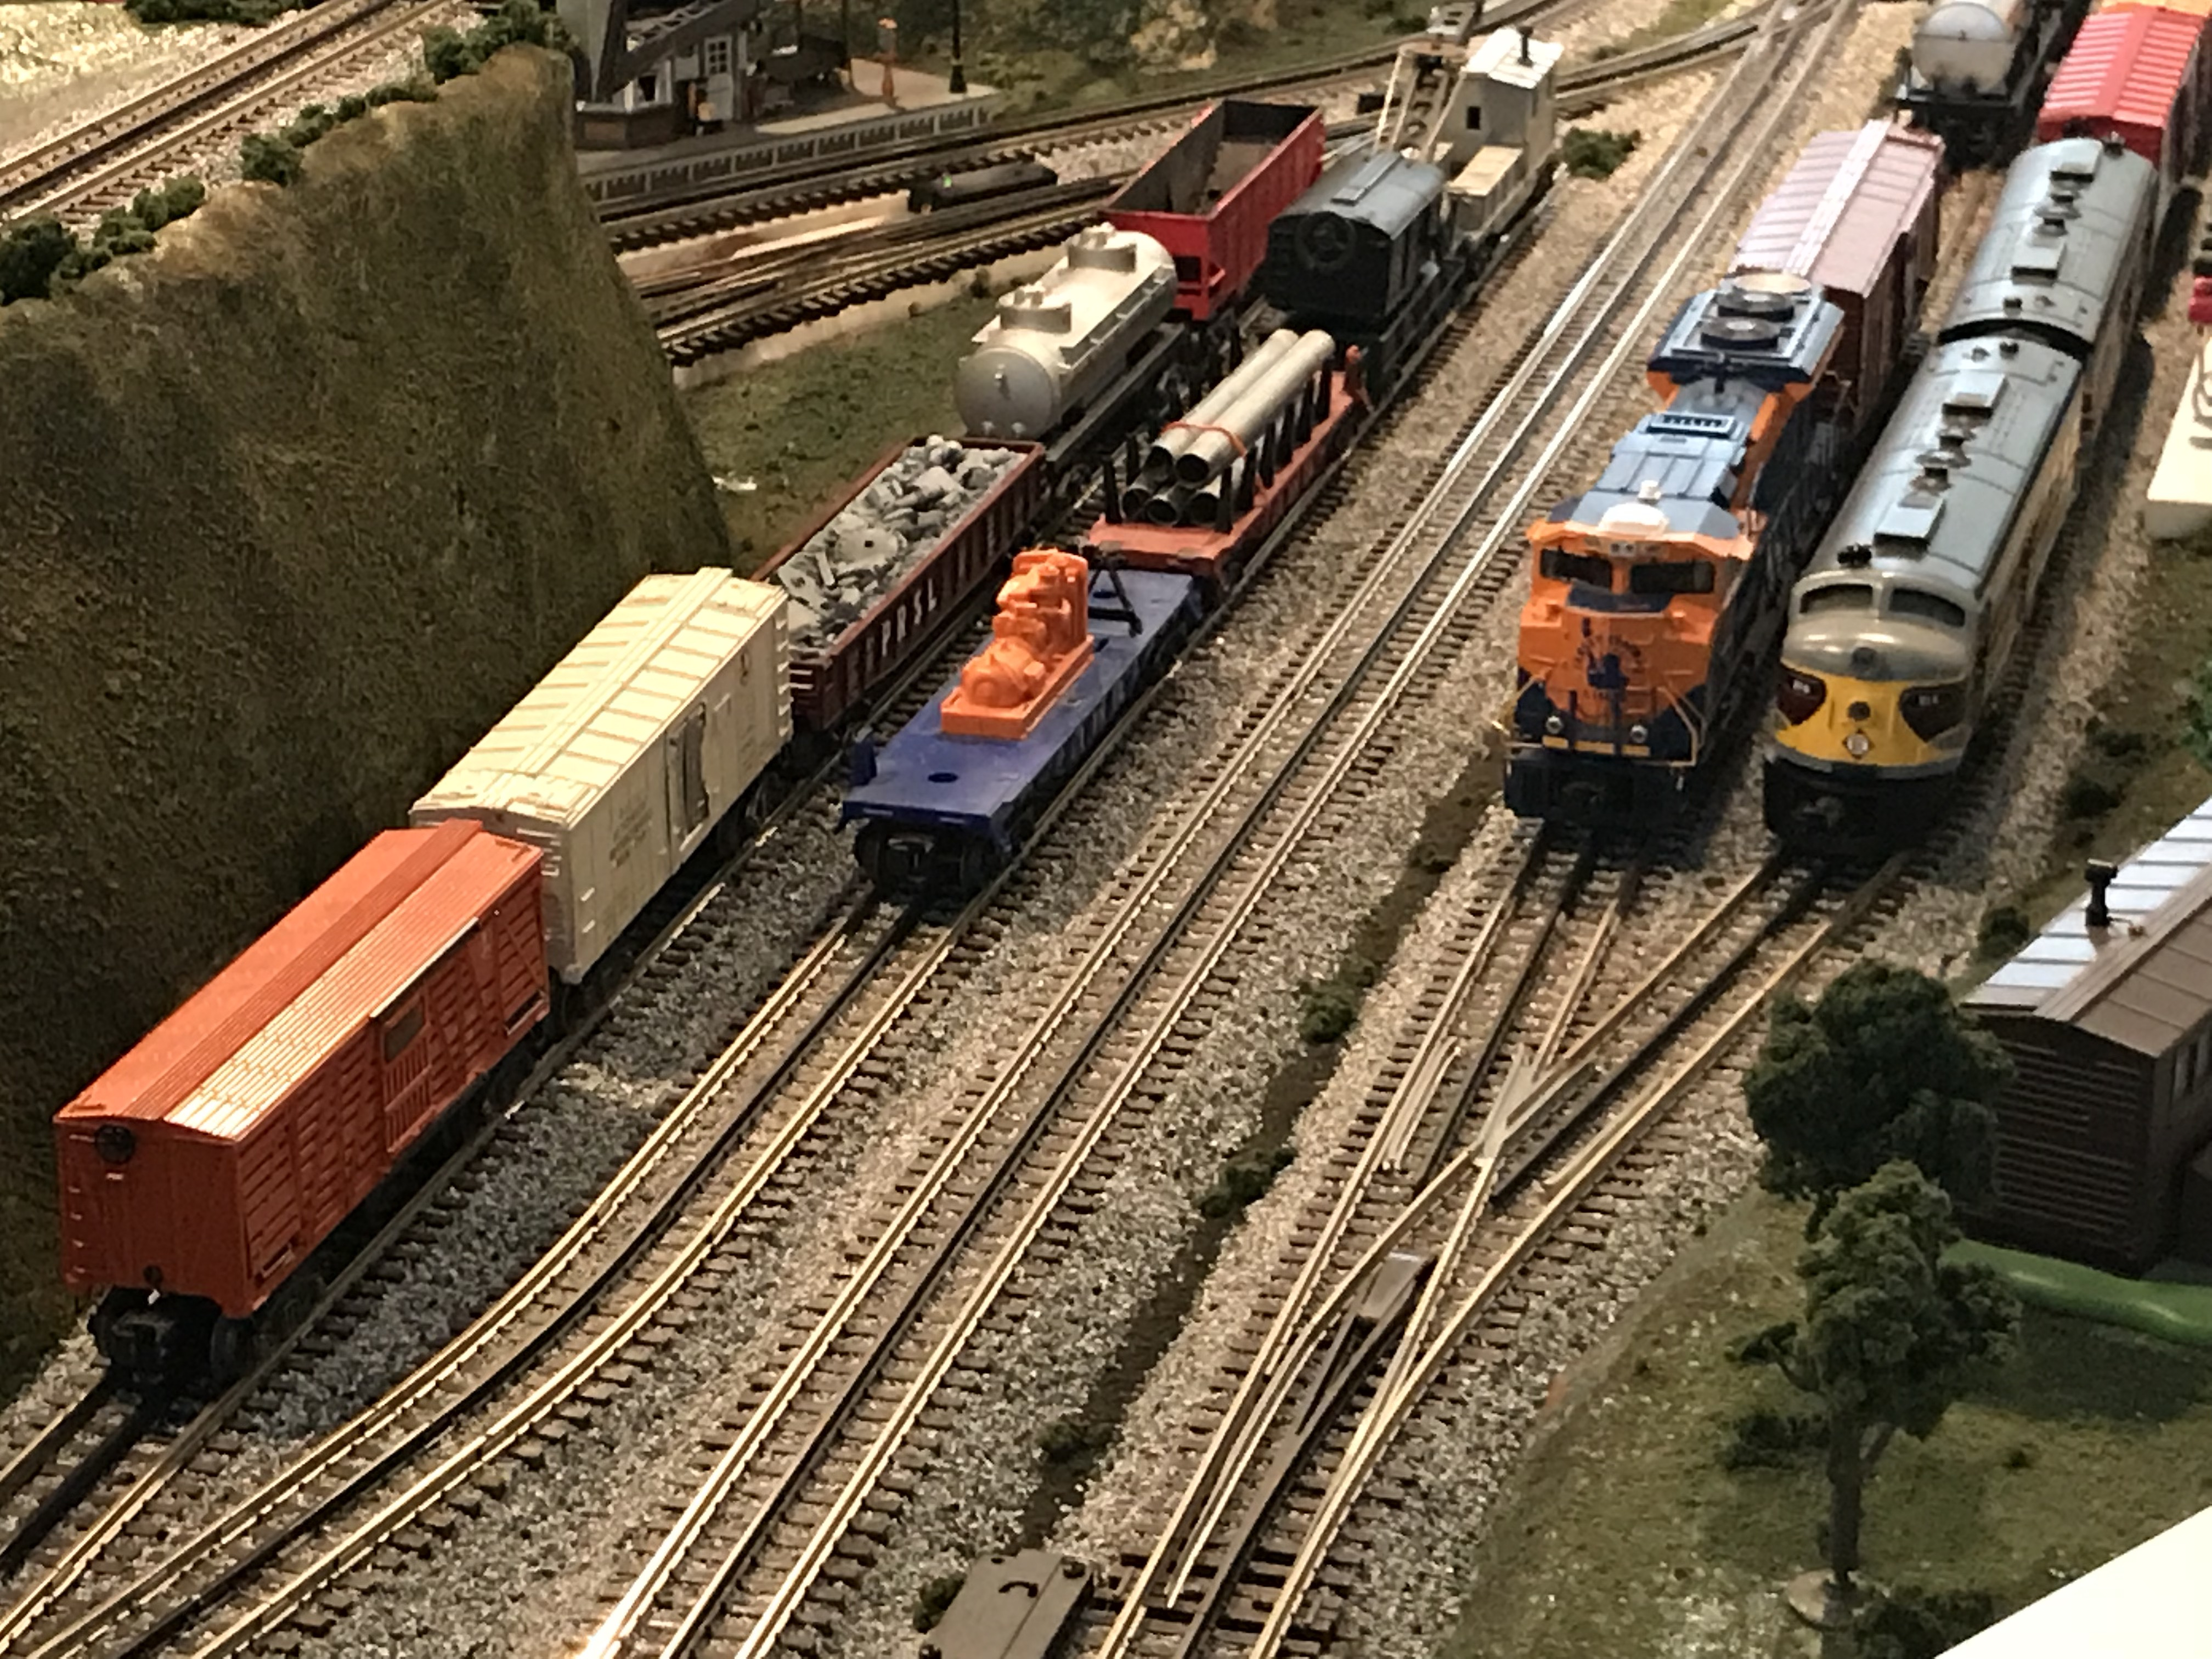 Layout photo showing the freight yard, with locomotives and freight cars in the sidings